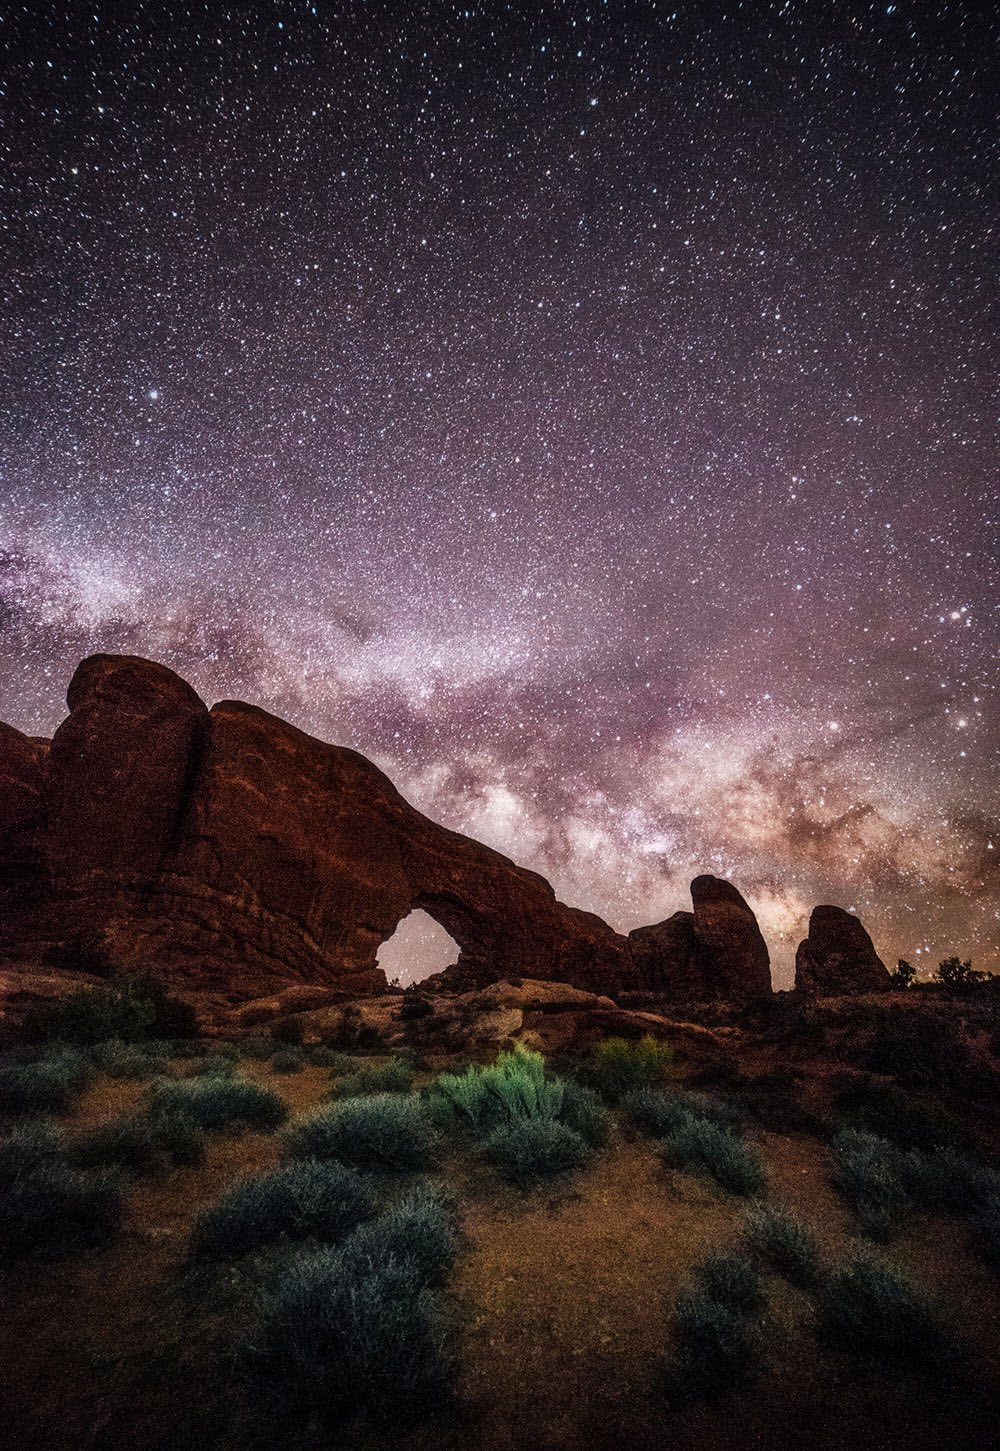 Milky Way over Arches National Park, #Utah | Photography by ©Hunter Day https://t.co/vye0AEUwhg